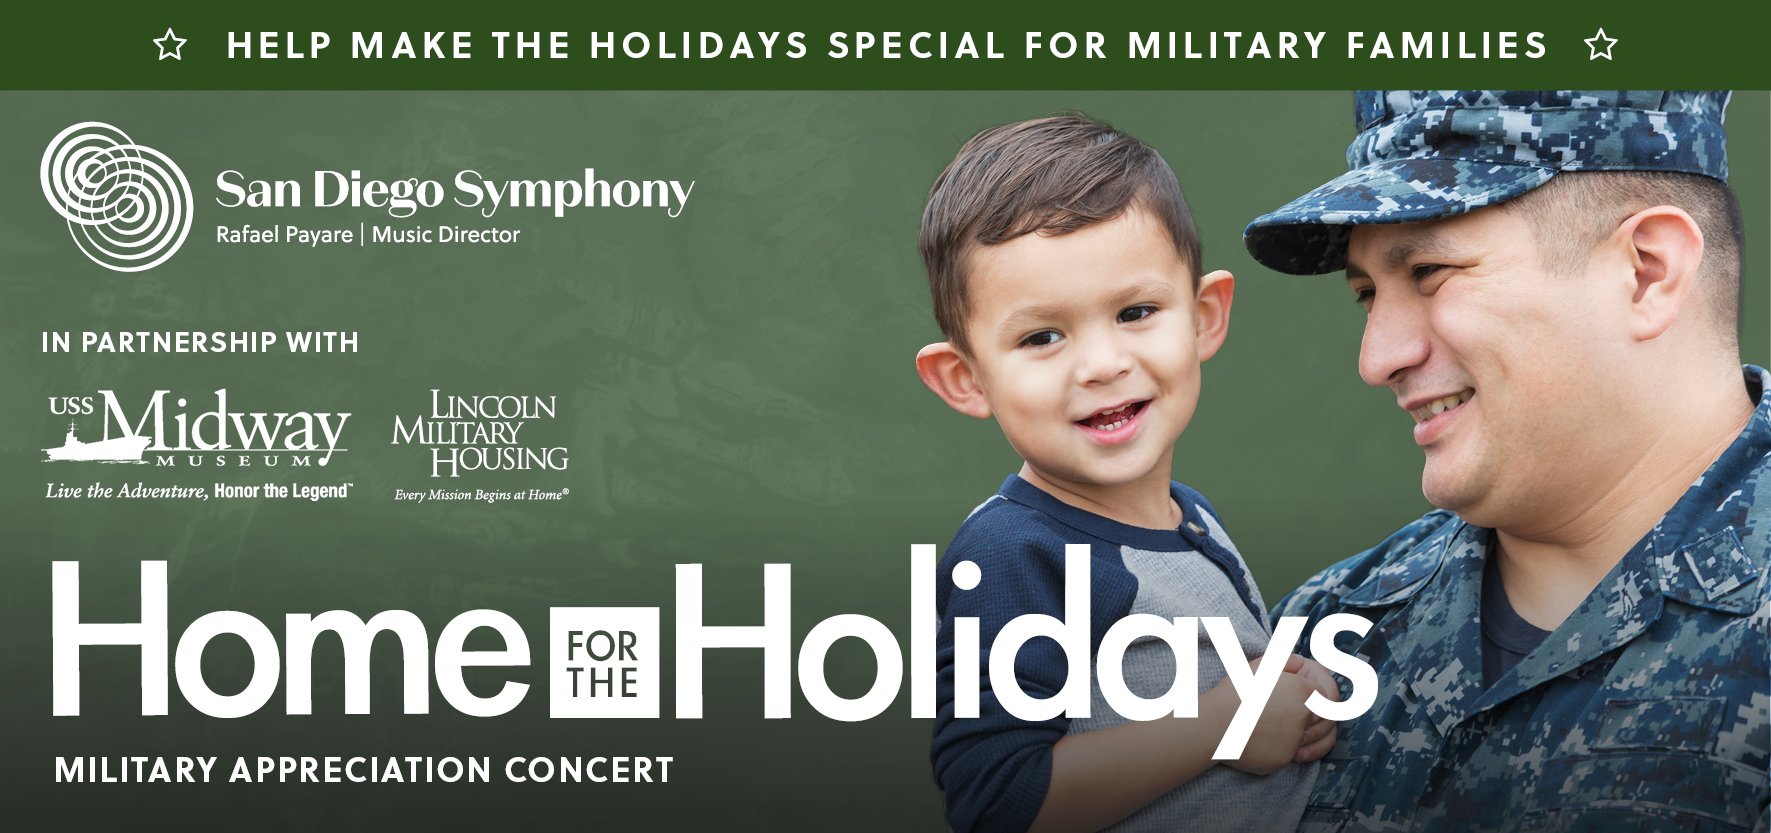 soldier holding his child: home for the holidays concert, presented by San Diego Symphony sponsored by USS Midway Museum and Lincoln Military Housing